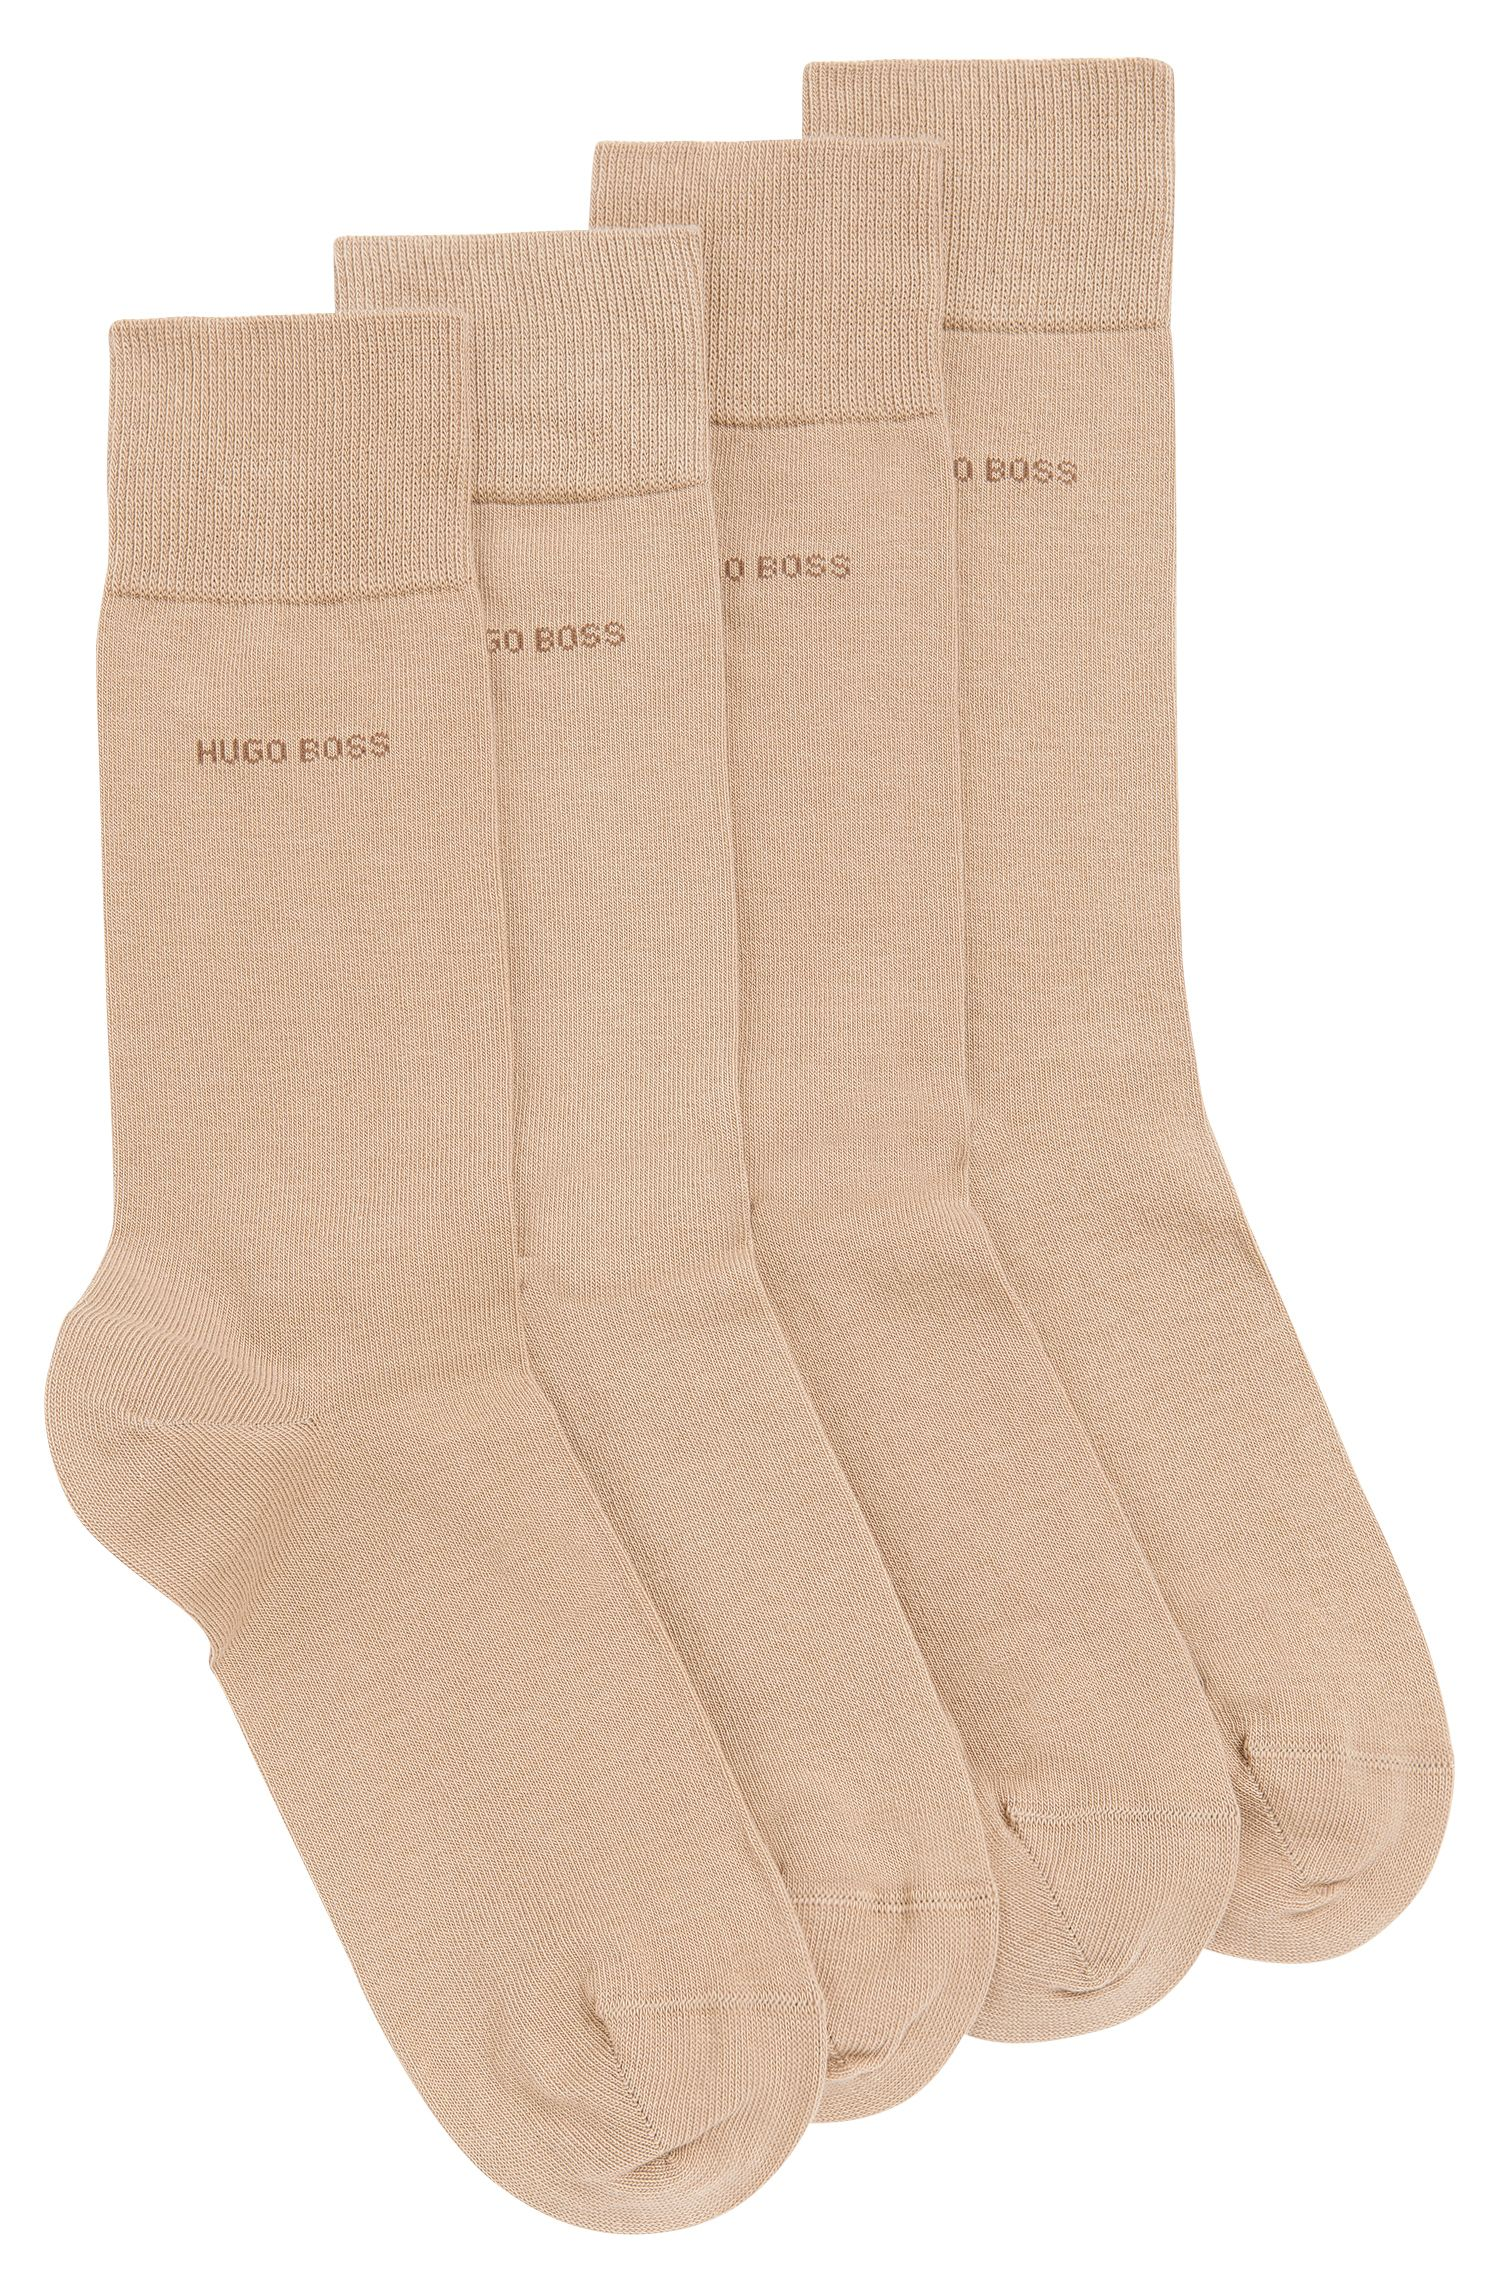 Two pack of regular-length cotton blend socks